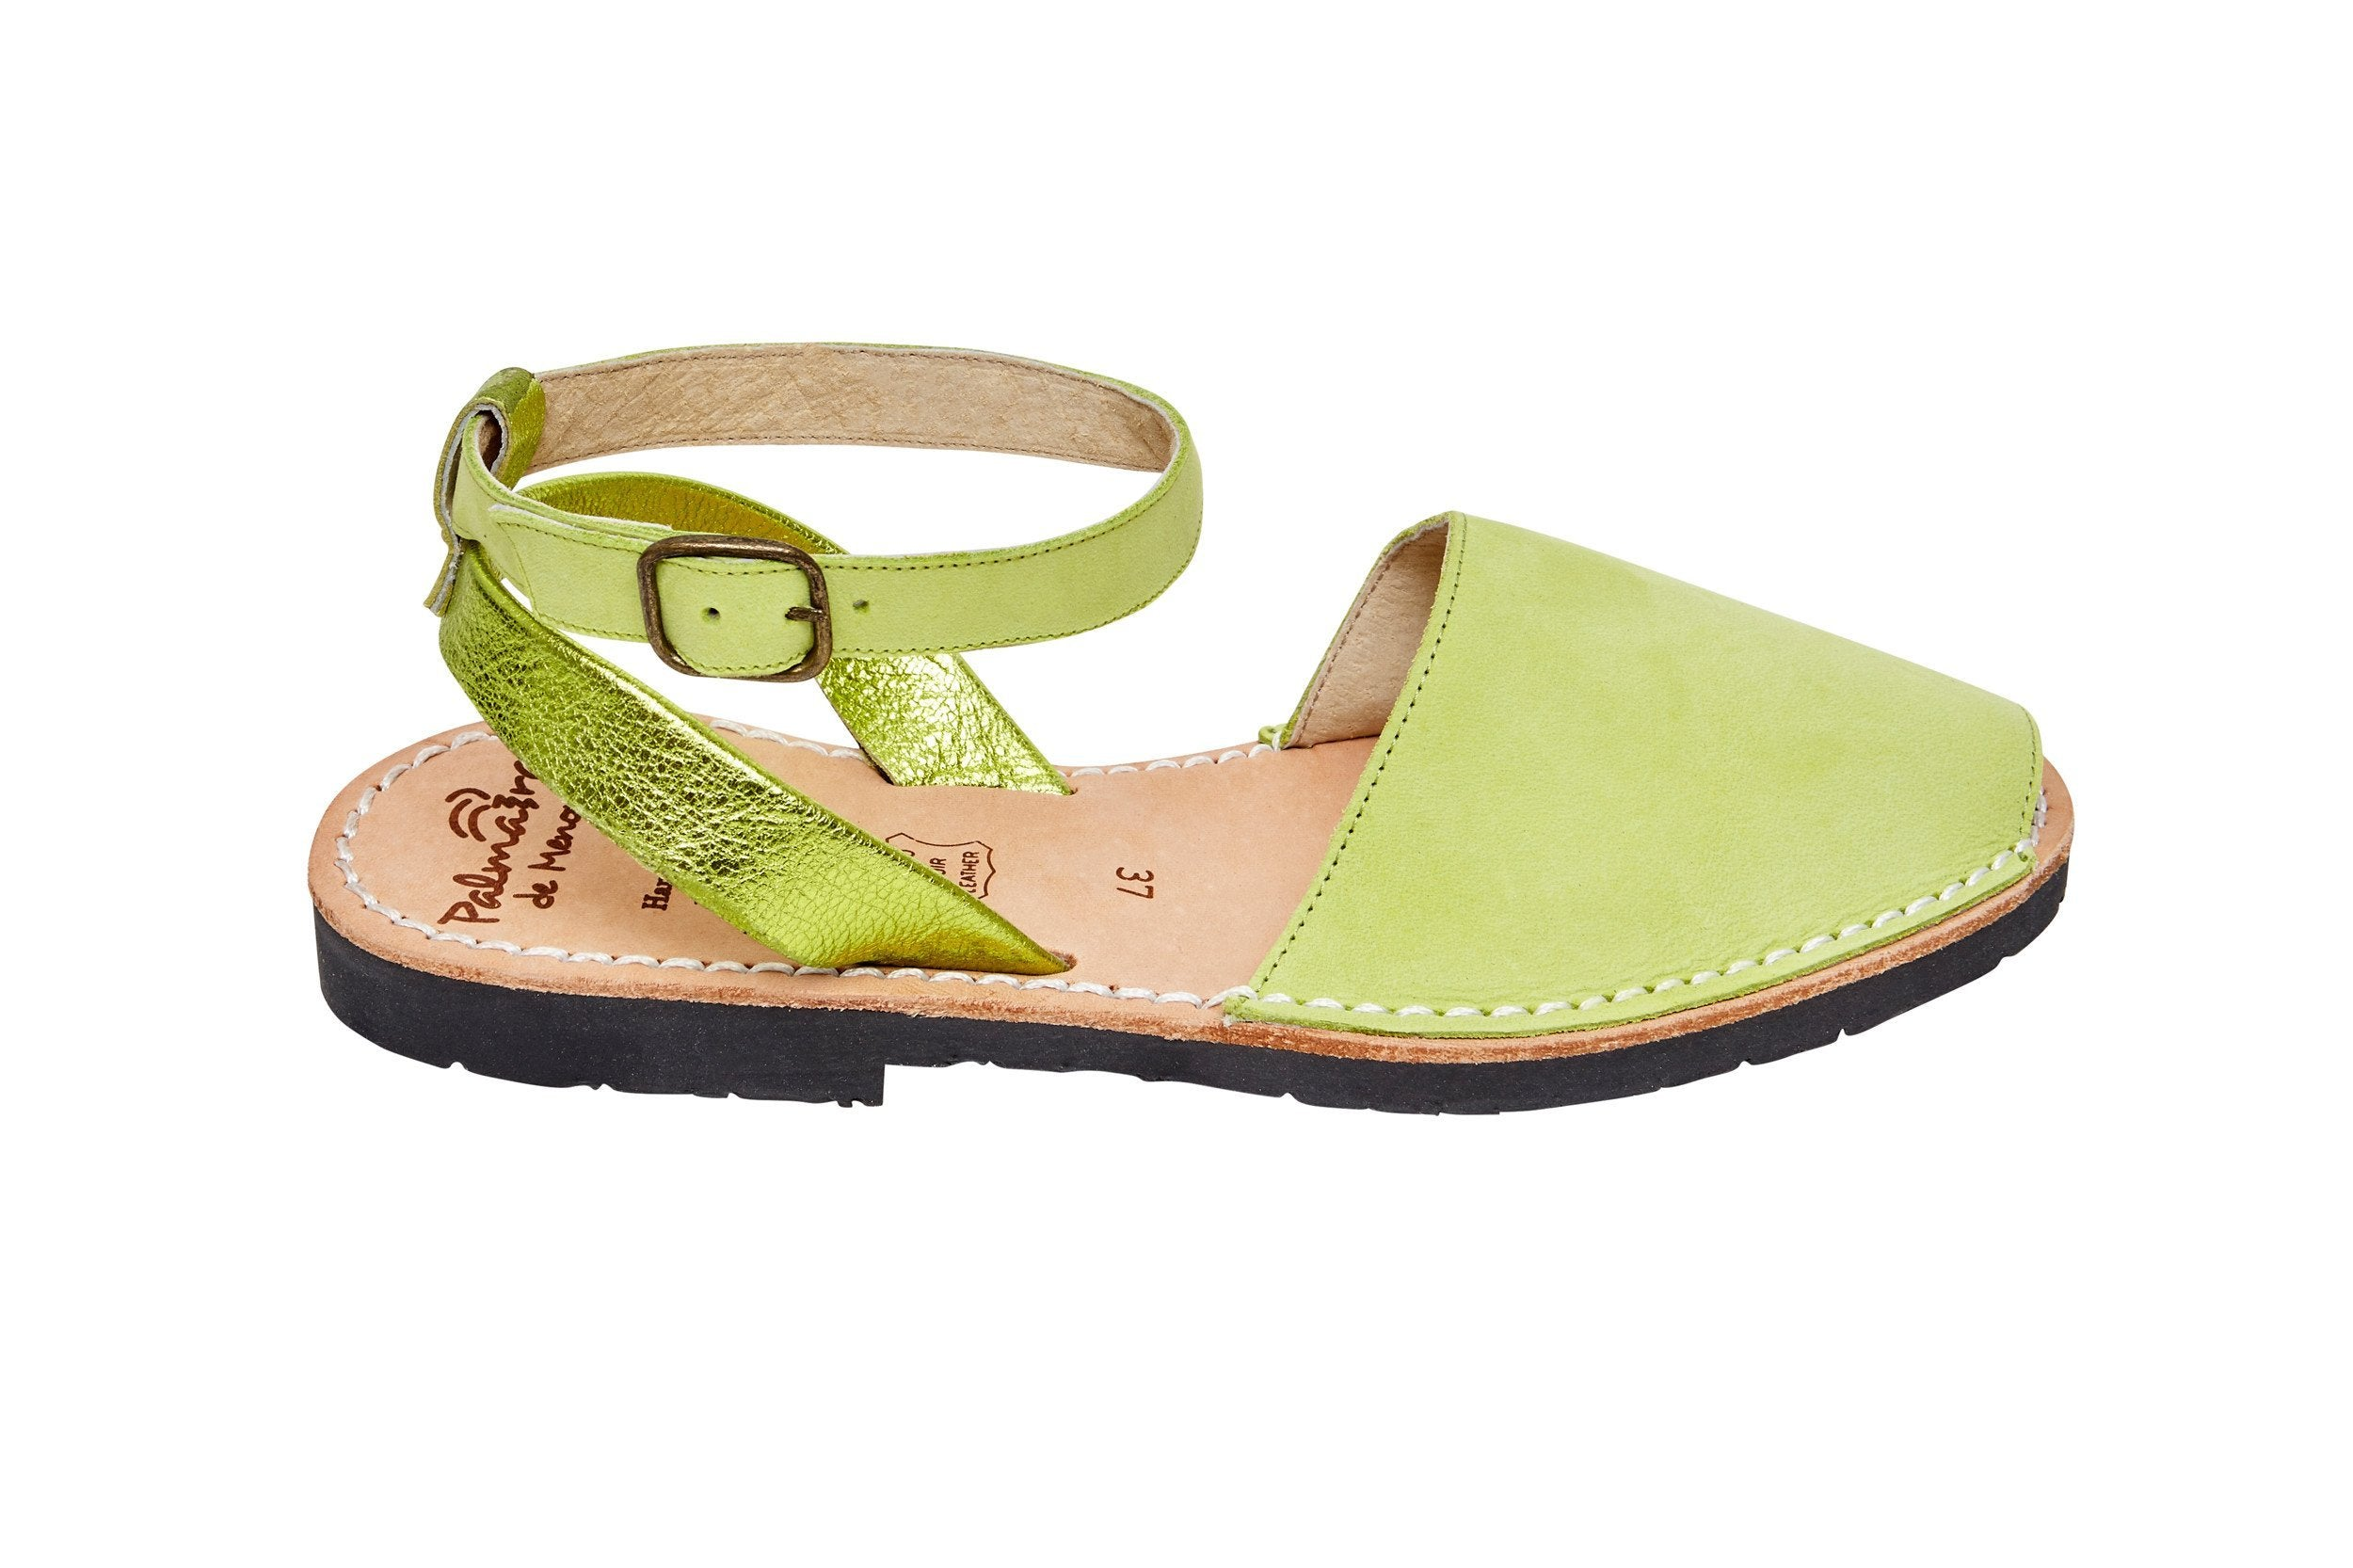 Palmaira Sandals Australia Lime Green Multiway